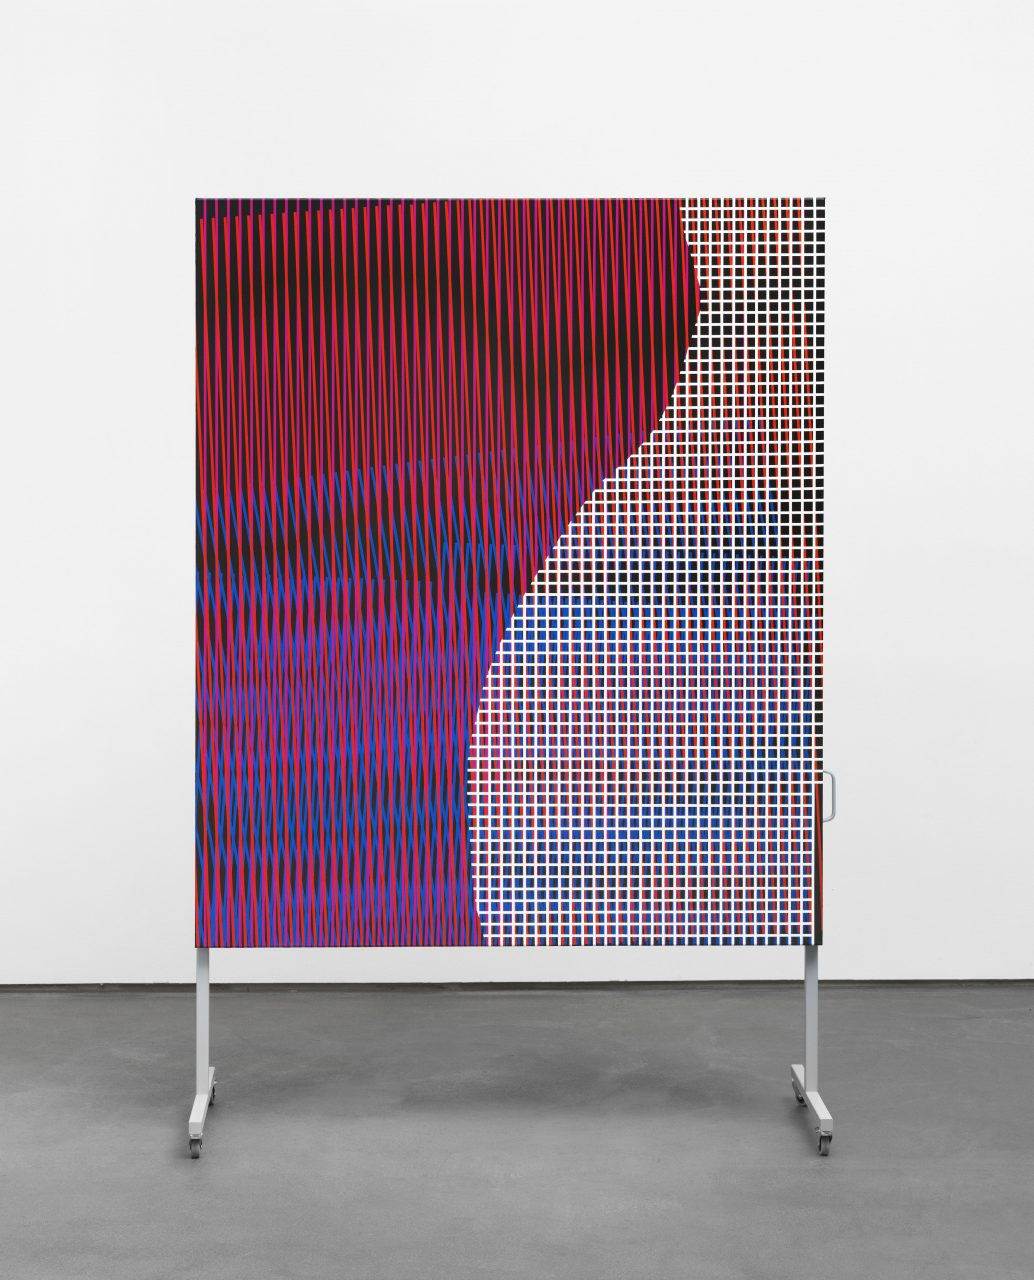 untitled (body color space), 2017 /// acrylic on canvas on metal display /// 245 x 155 x 60 cm